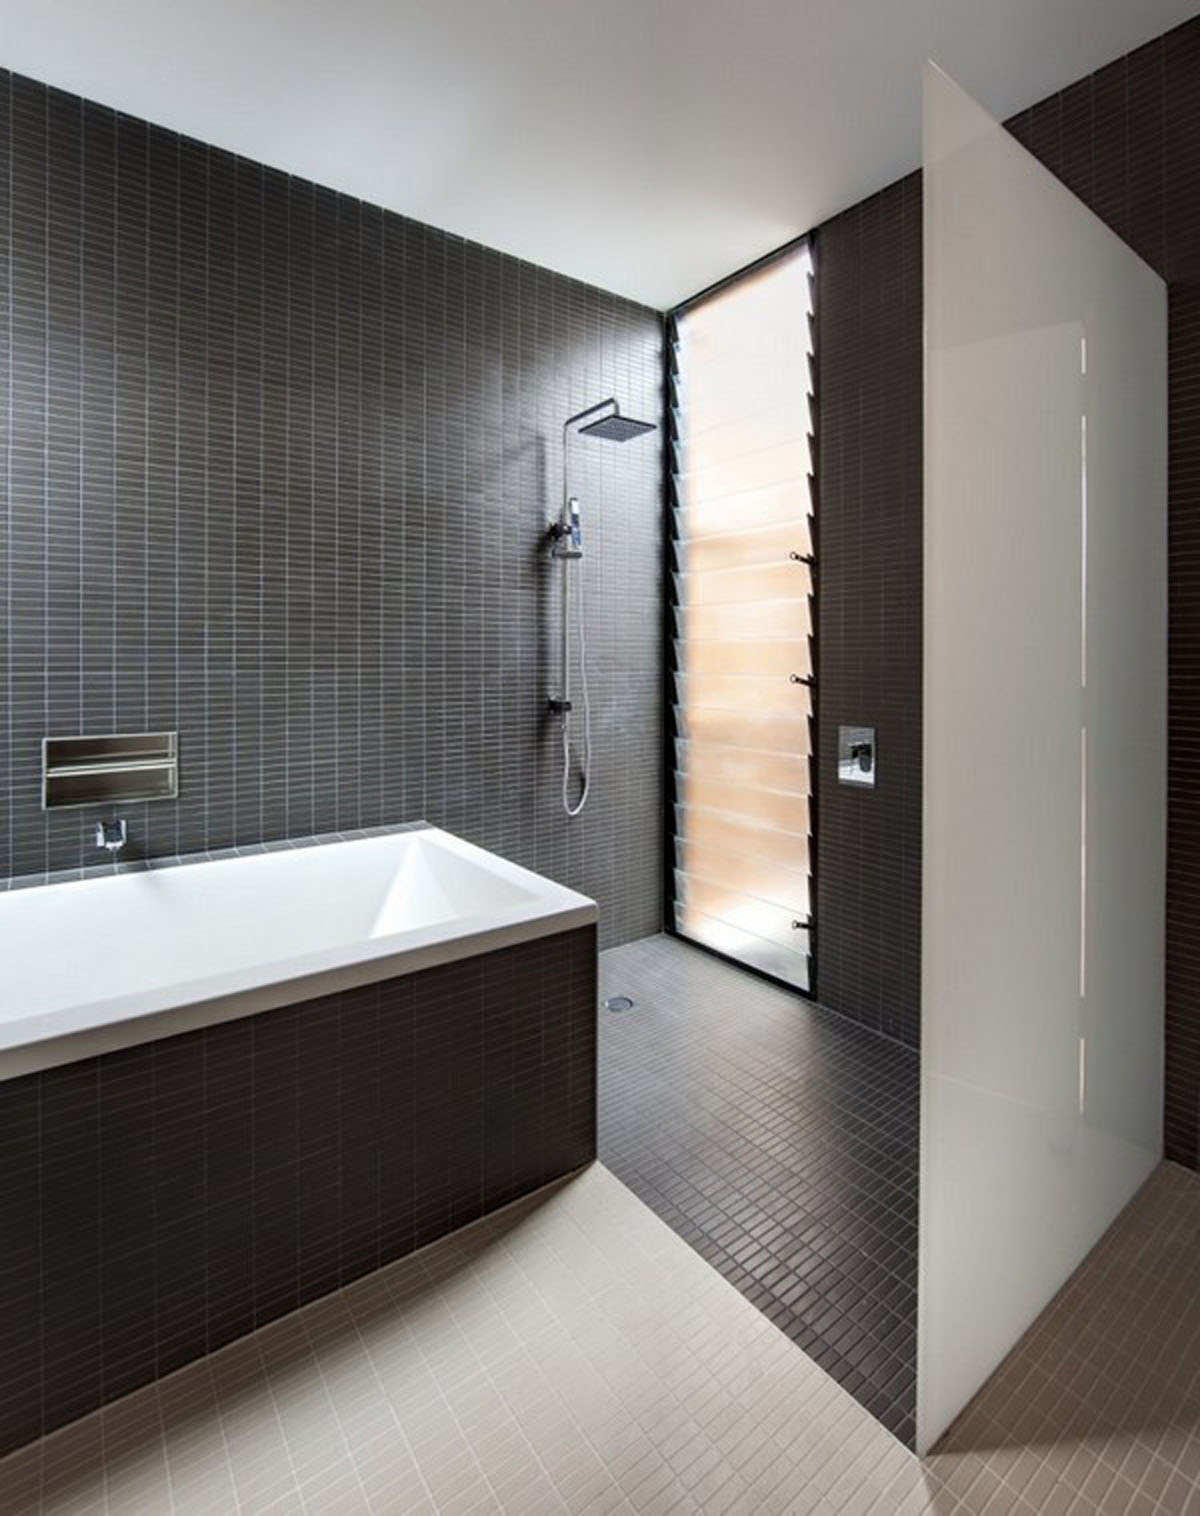 Bathroom ideas black and white - Black Tiled Wall Built In Bathtub Covered With Black Tiled White Glass Separator Single Steel Shower